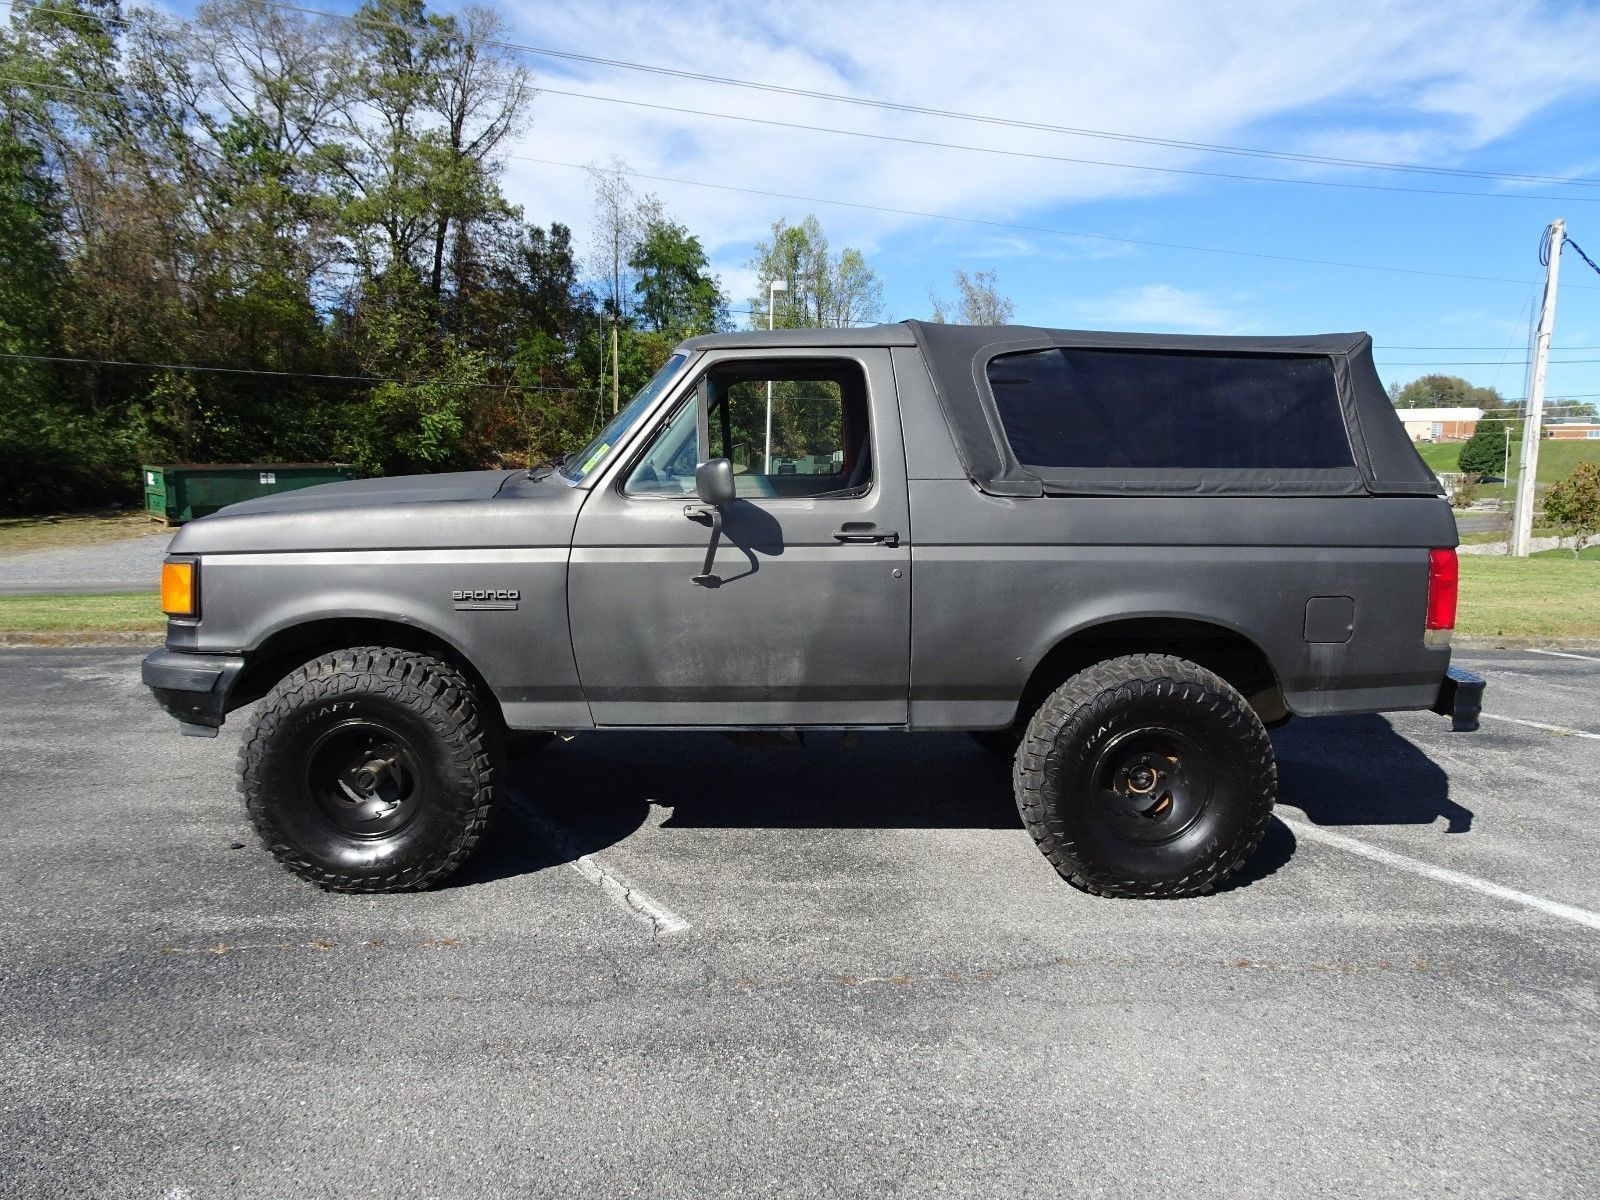 1988 Ford Bronco XLT | Ford bronco, Ford and Cars